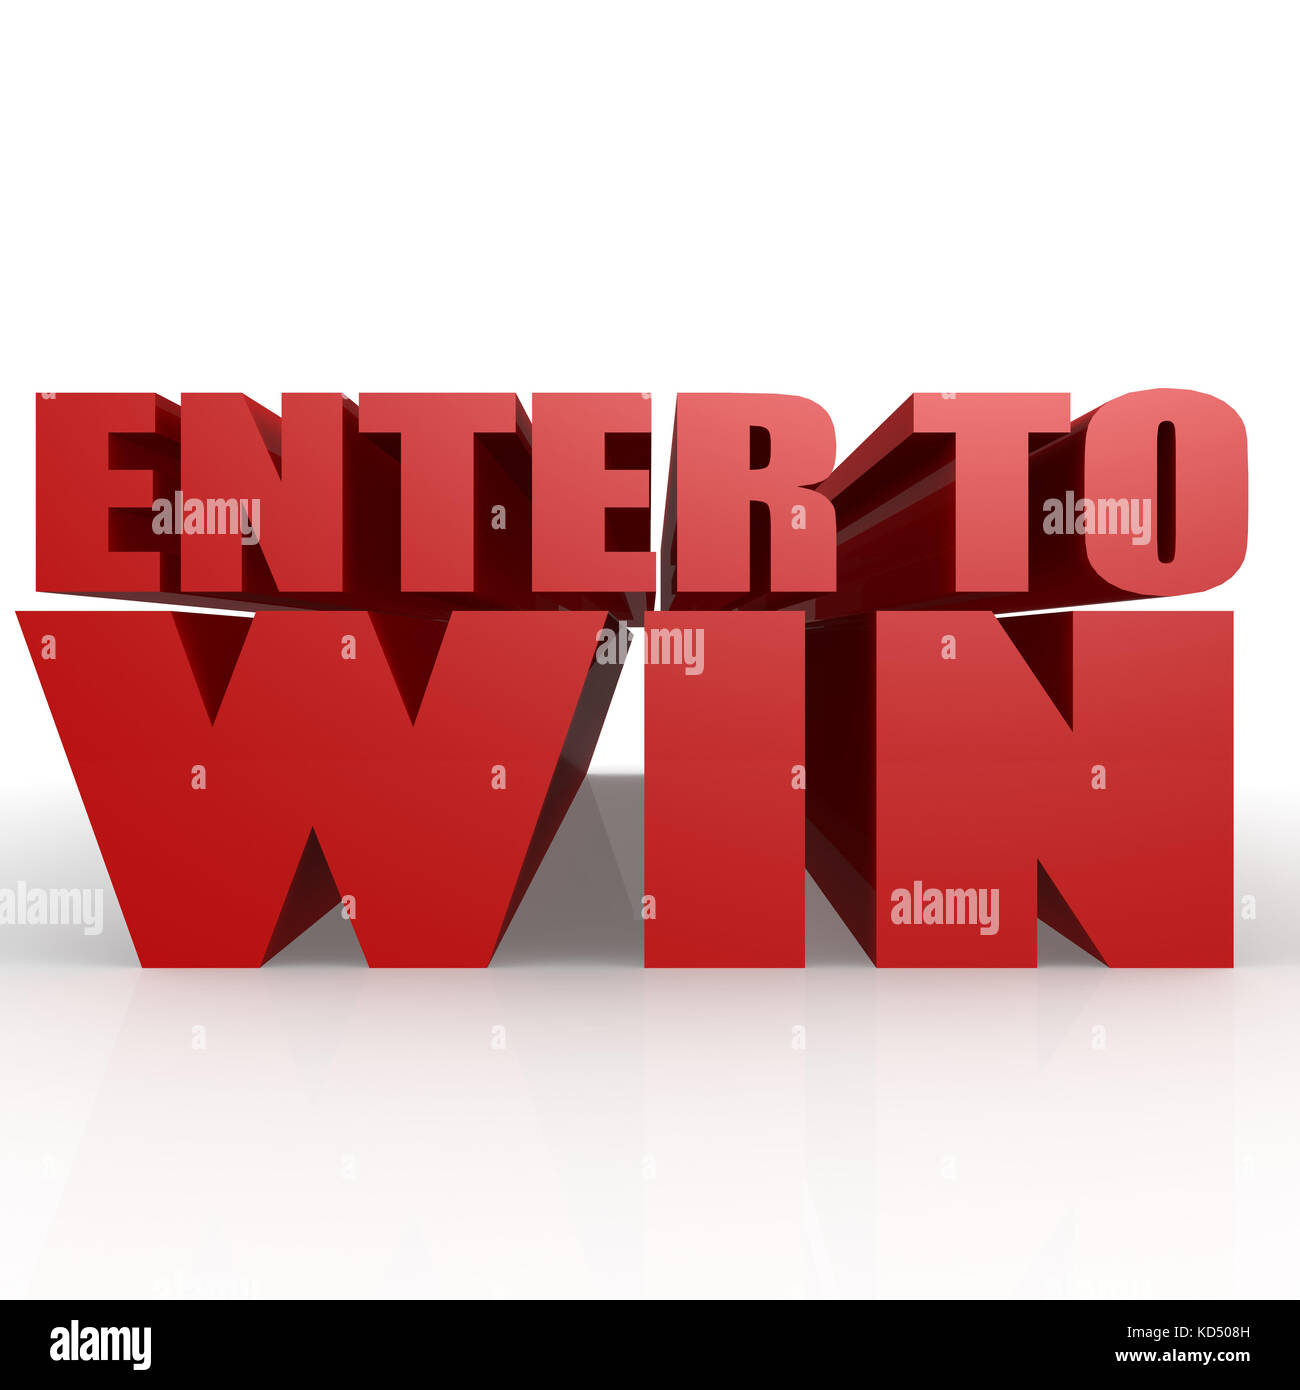 Enter to win image with hi-res rendered artwork that could be used for any graphic design. - Stock Image